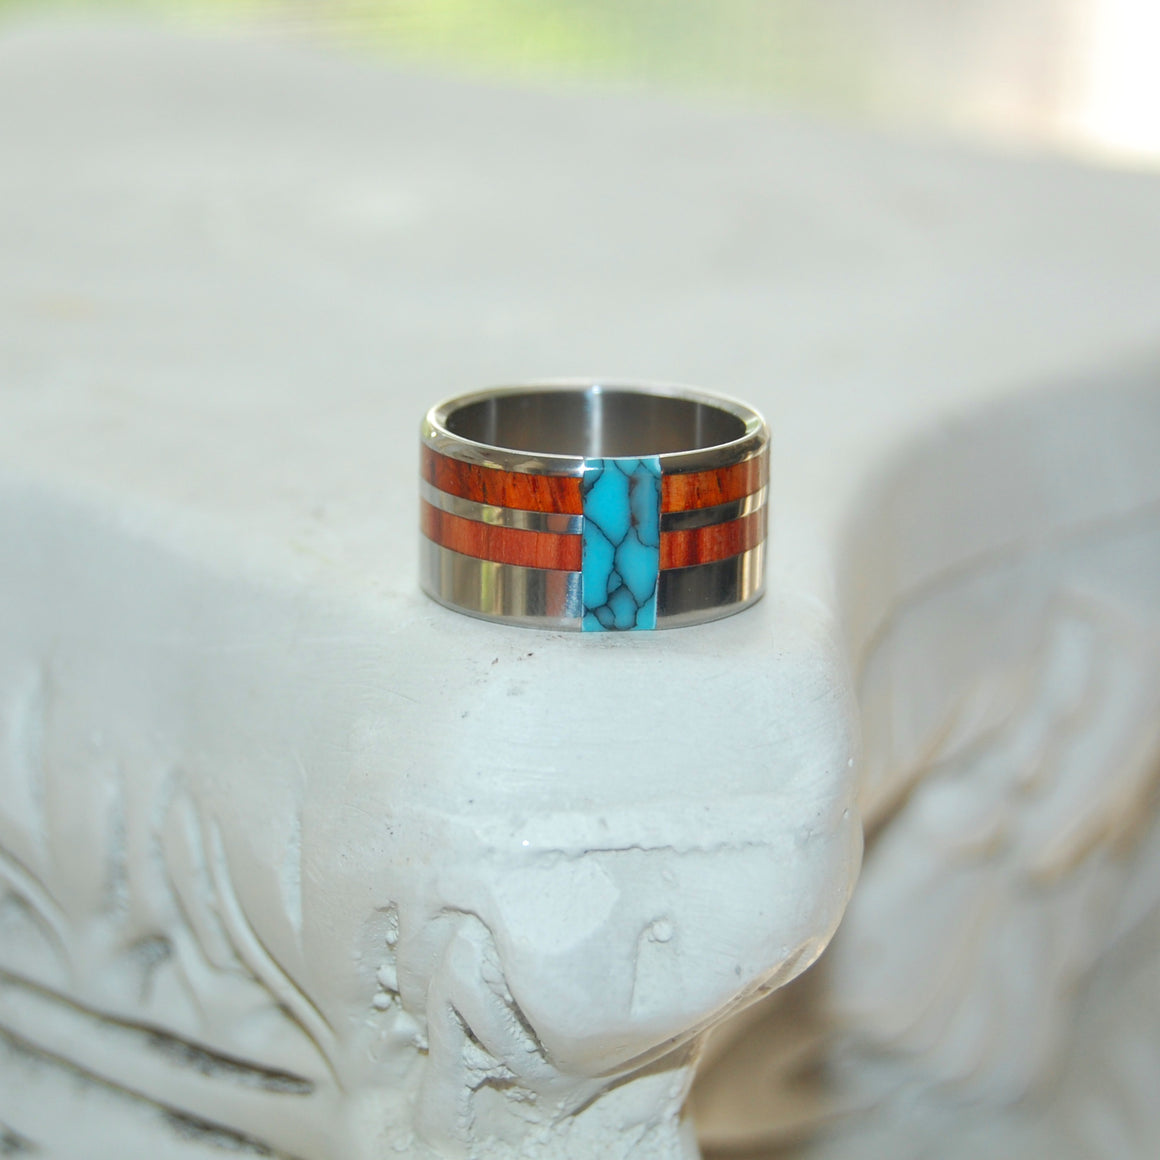 COMET & CONSTELLATION | Tulip Wood, Cocobolo Wood & Turquoise Titanium Men's Wedding Rings - Minter and Richter Designs